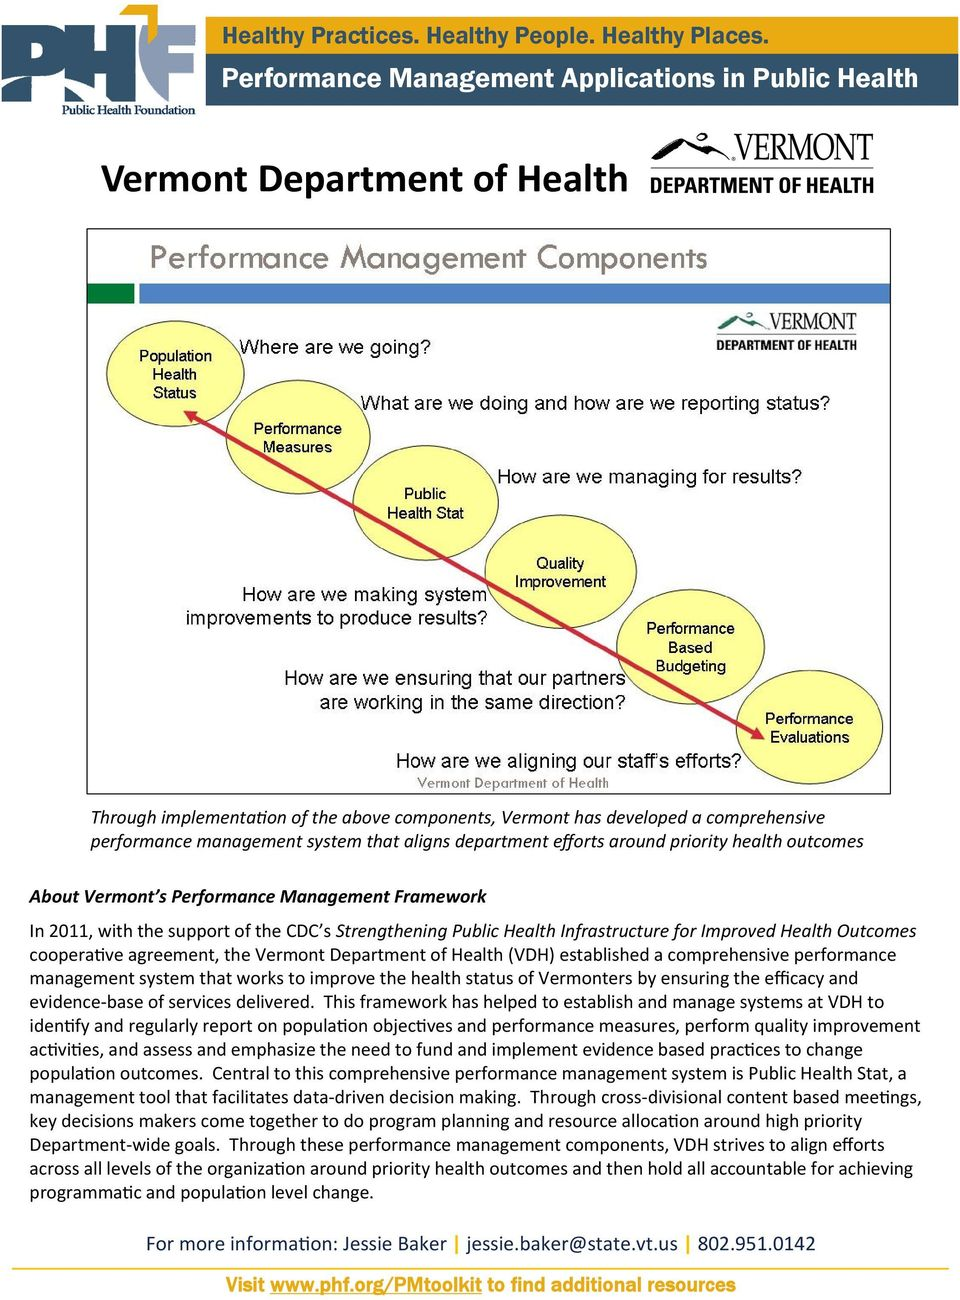 Vermont Department of Health (VDH) established a comprehensive performance management system that works to improve the health status of Vermonters by ensuring the efficacy and evidence base of